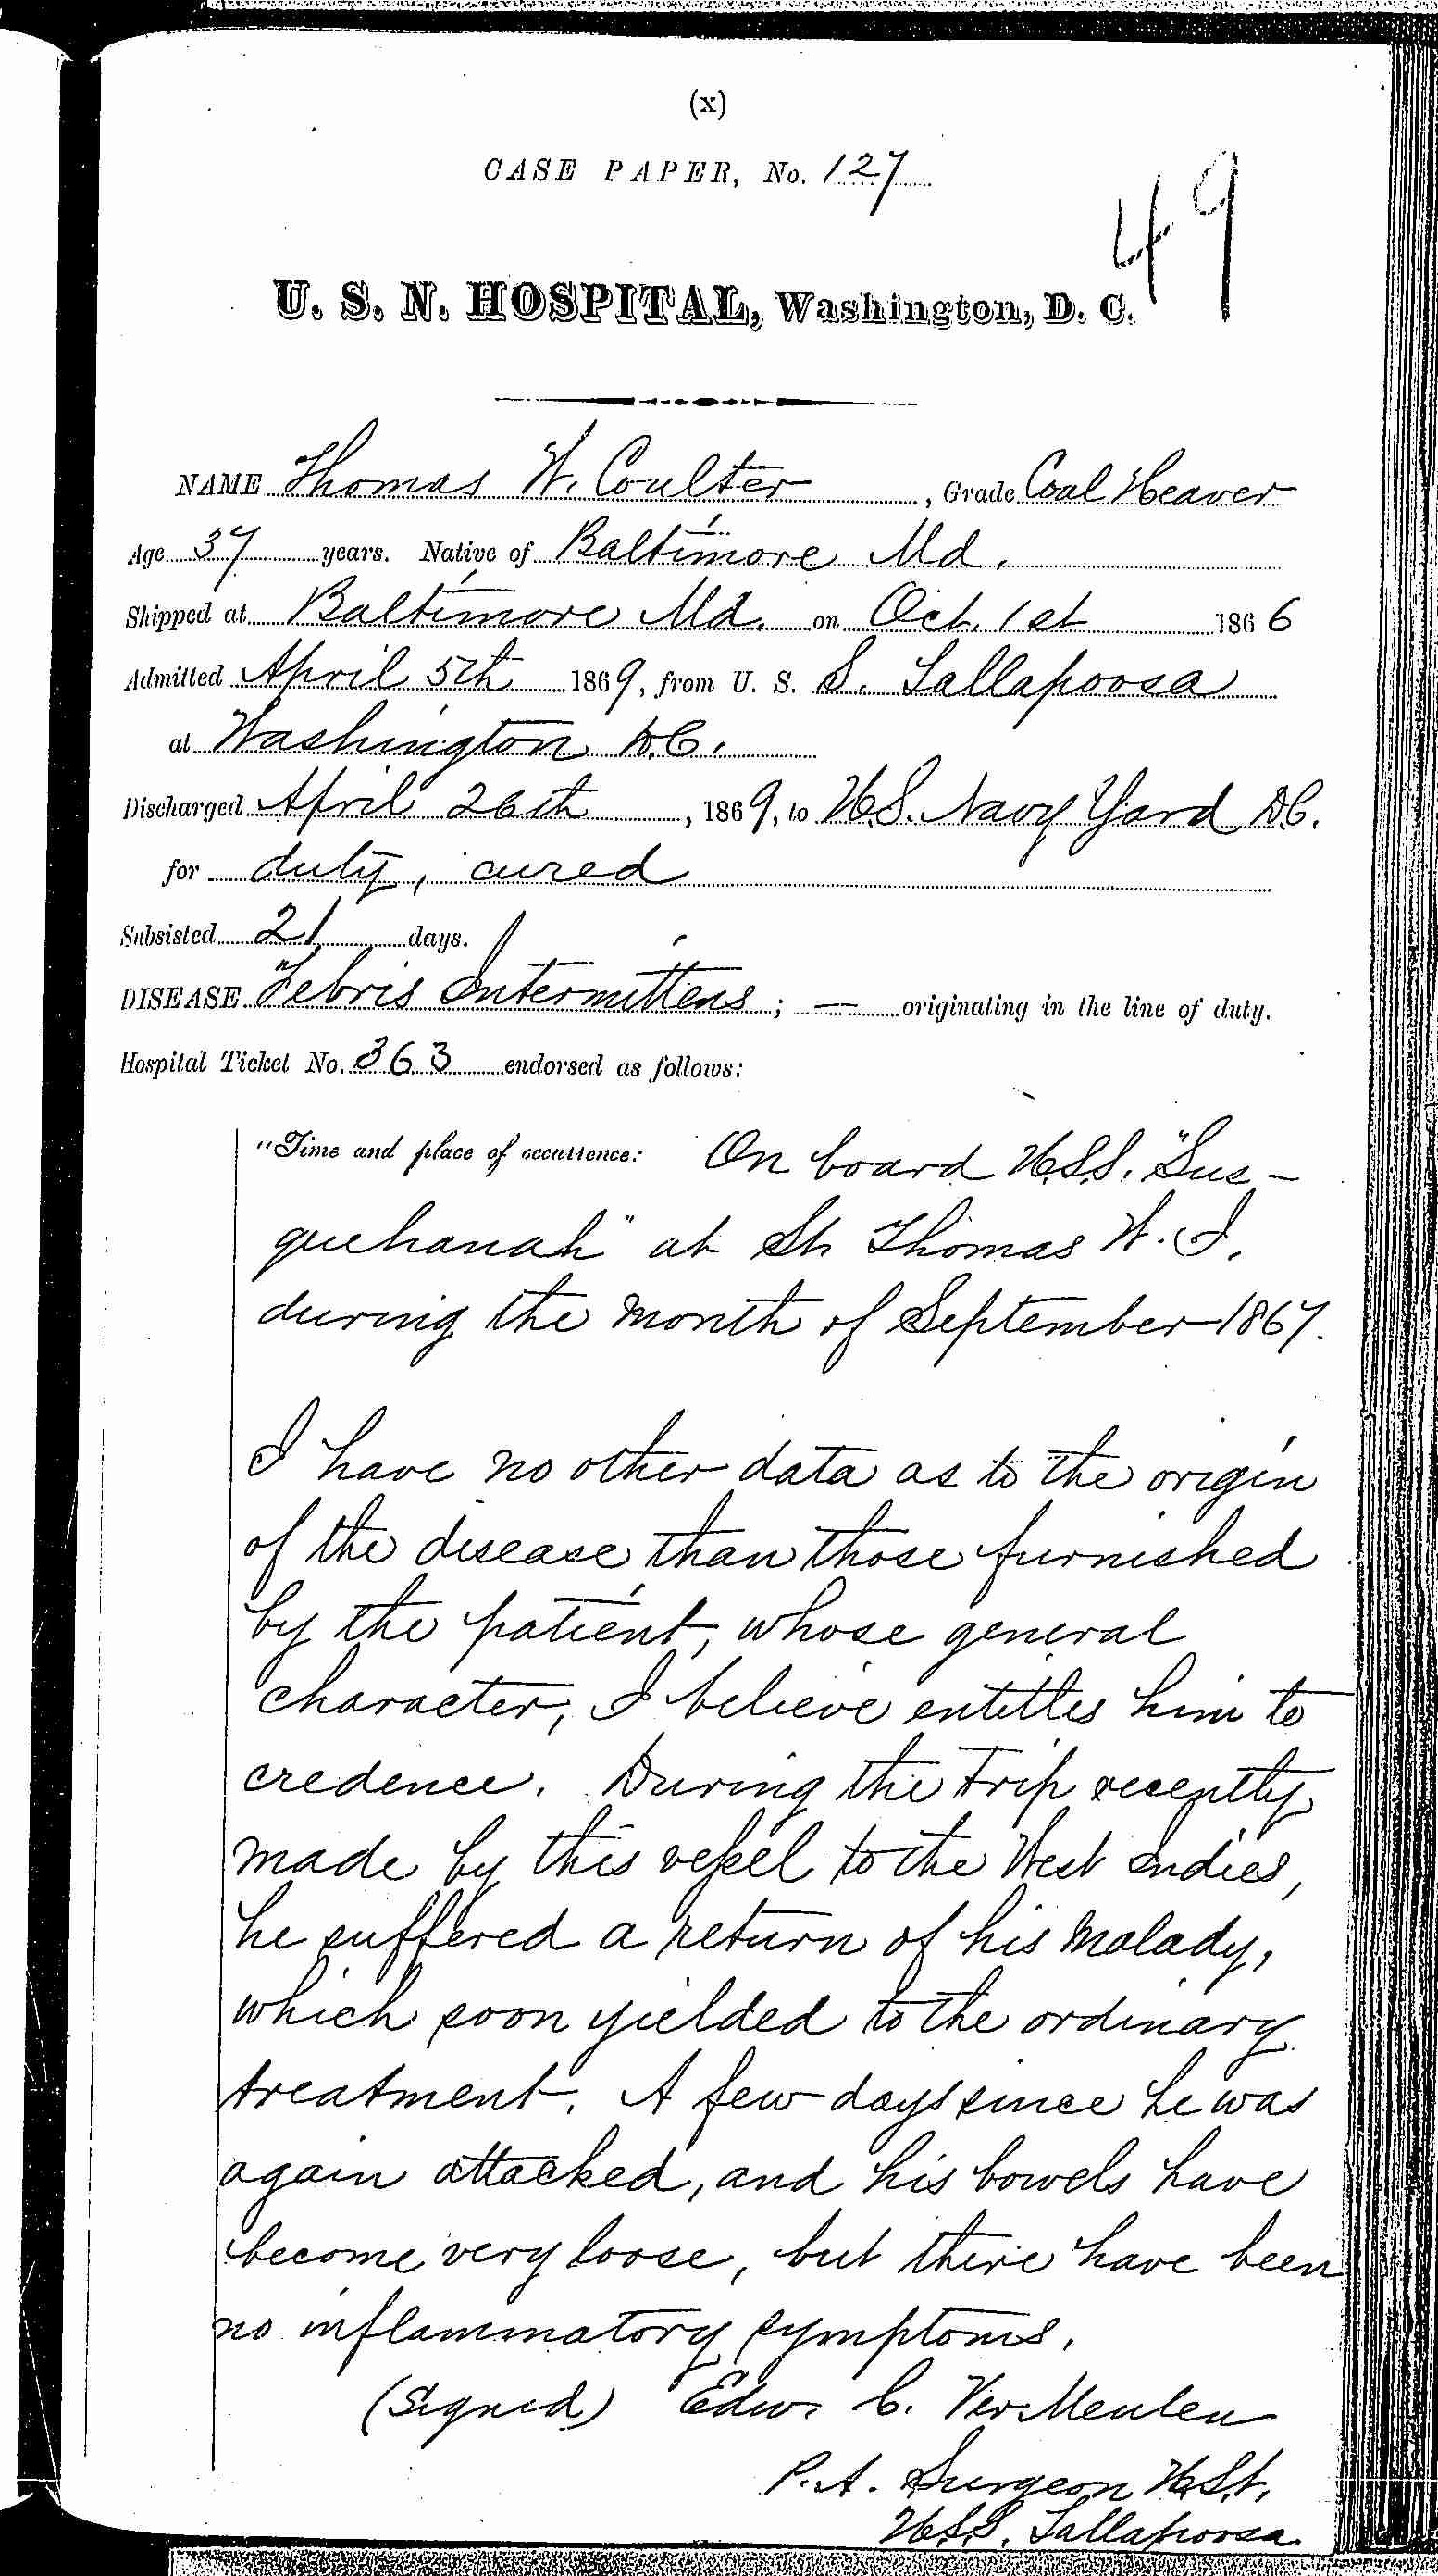 Entry for Thomas W. Coulter (page 1 of 3) in the log Hospital Tickets and Case Papers - Naval Hospital - Washington, D.C. - 1868-69